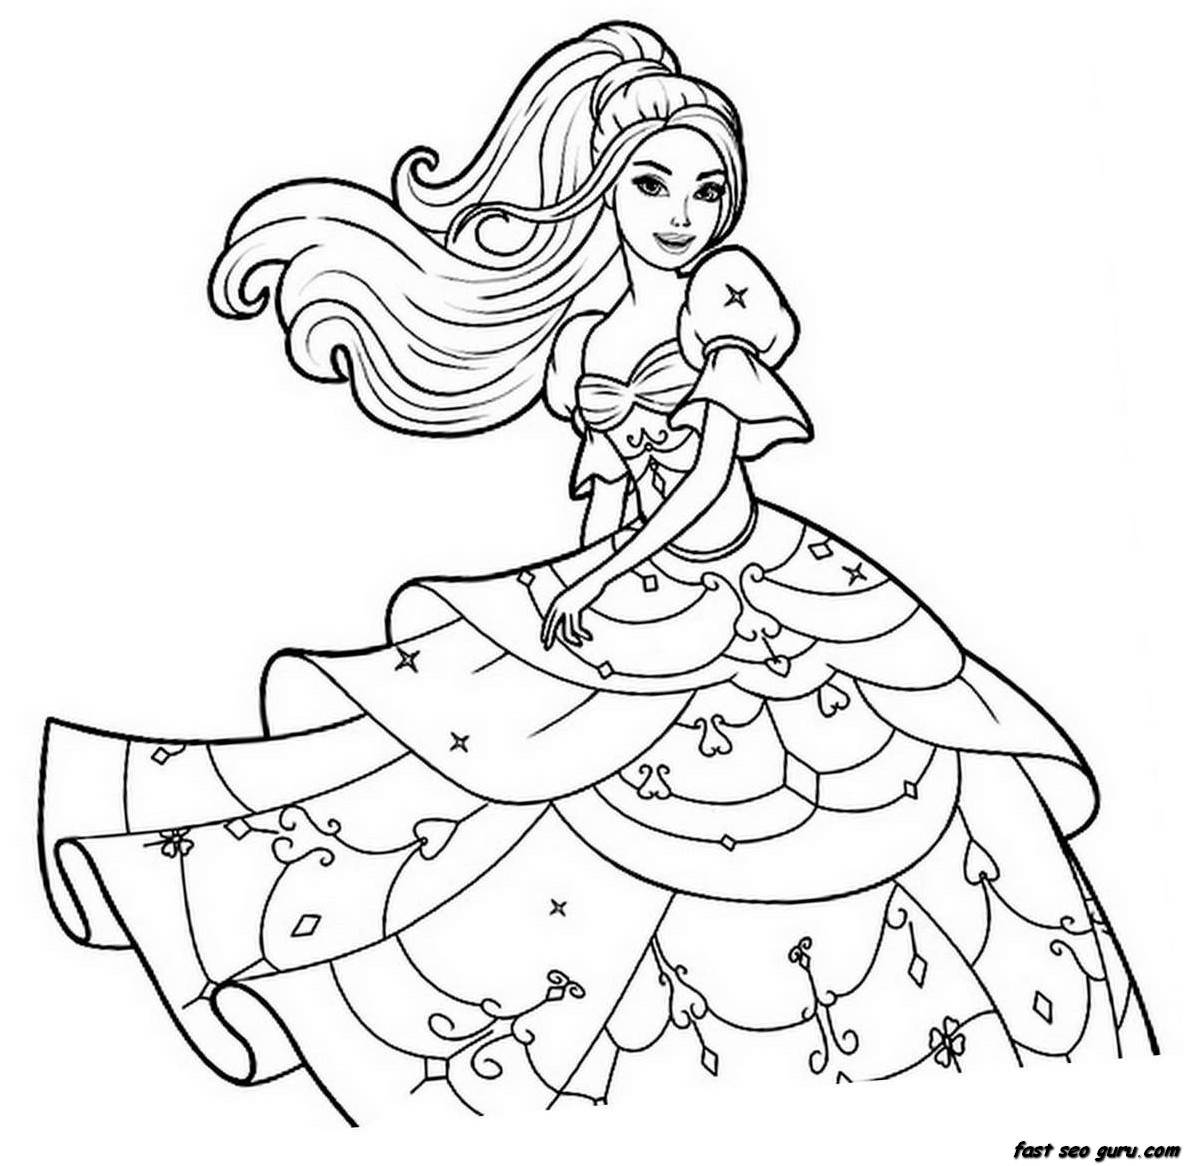 girl colouring pictures cute girl coloring pages to download and print for free pictures girl colouring